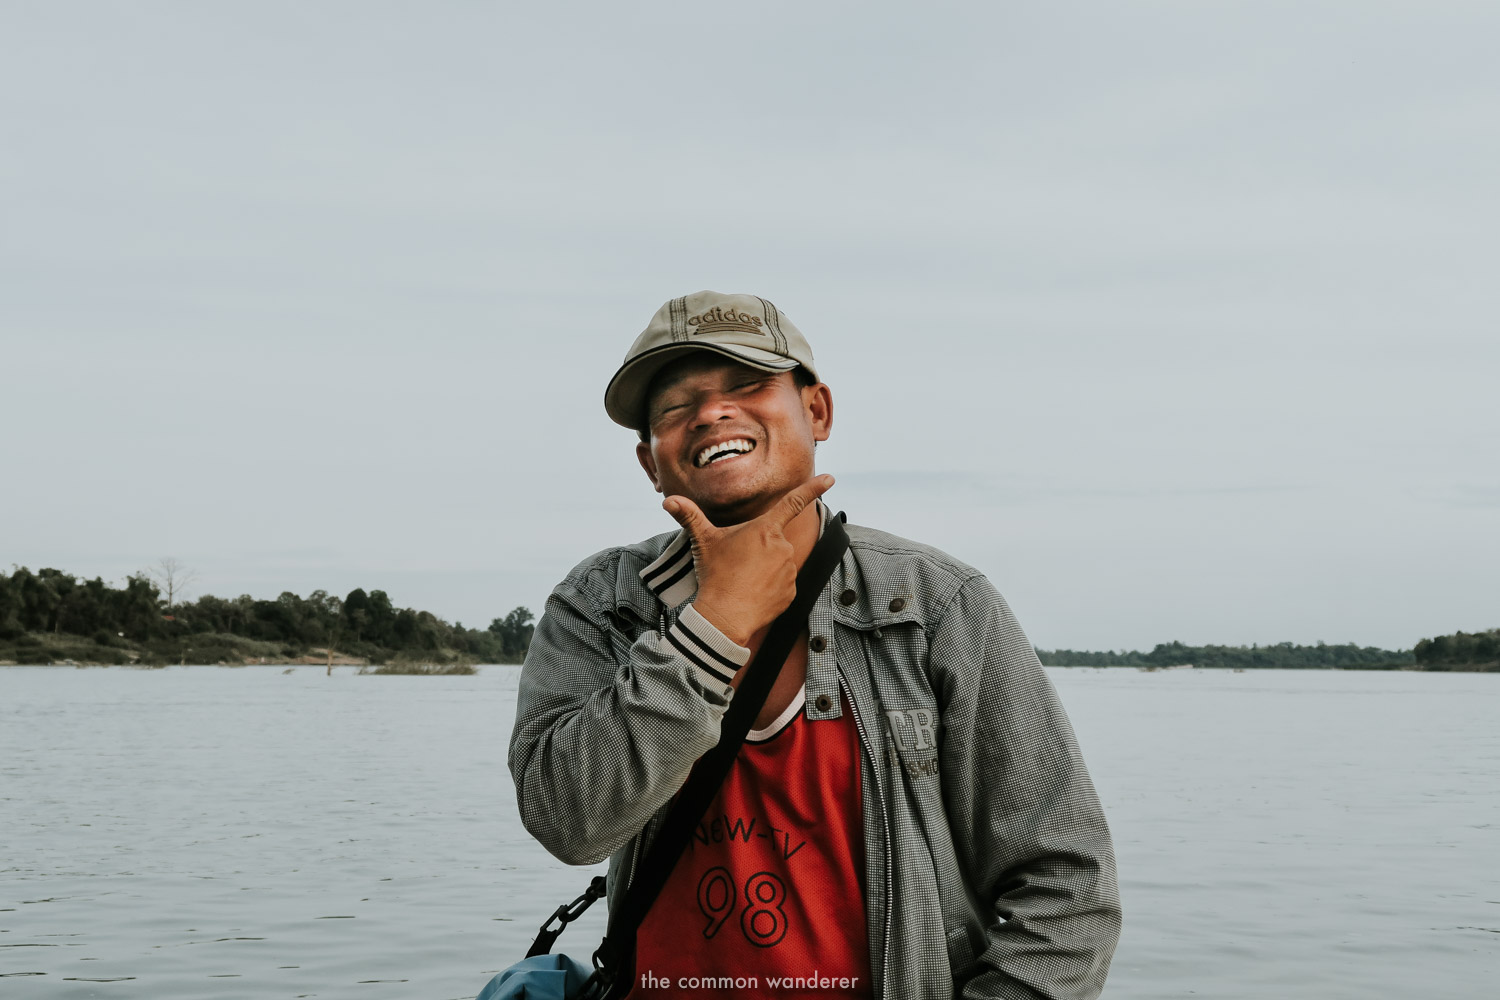 Our guide while searching for Irrawaddy dolphins in Don Det 4000 Islands, Laos